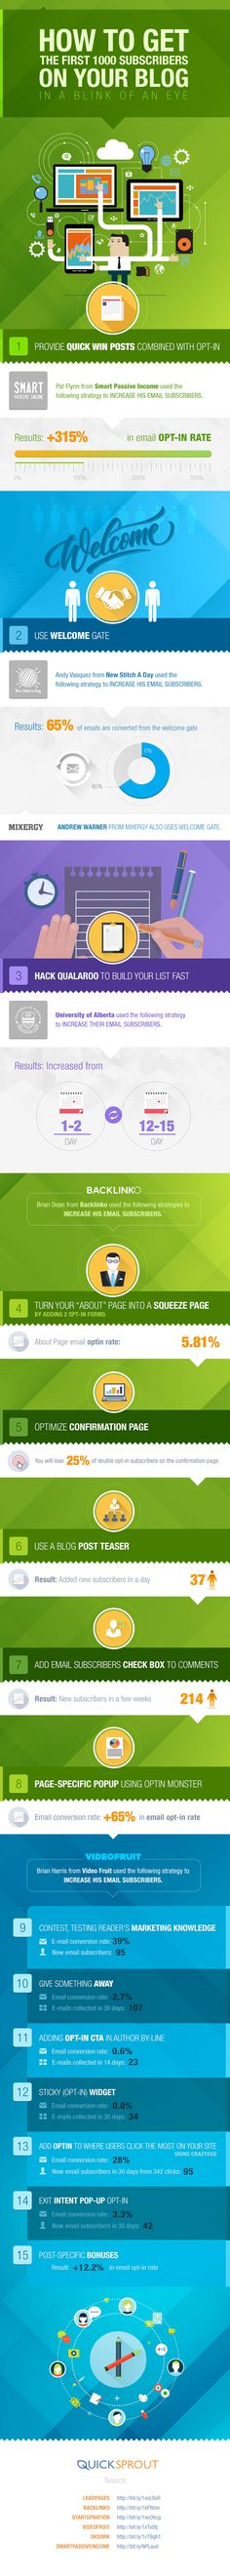 How To Get The First 1,000 Email Subscribers To Your Blog - #infographic #blogging